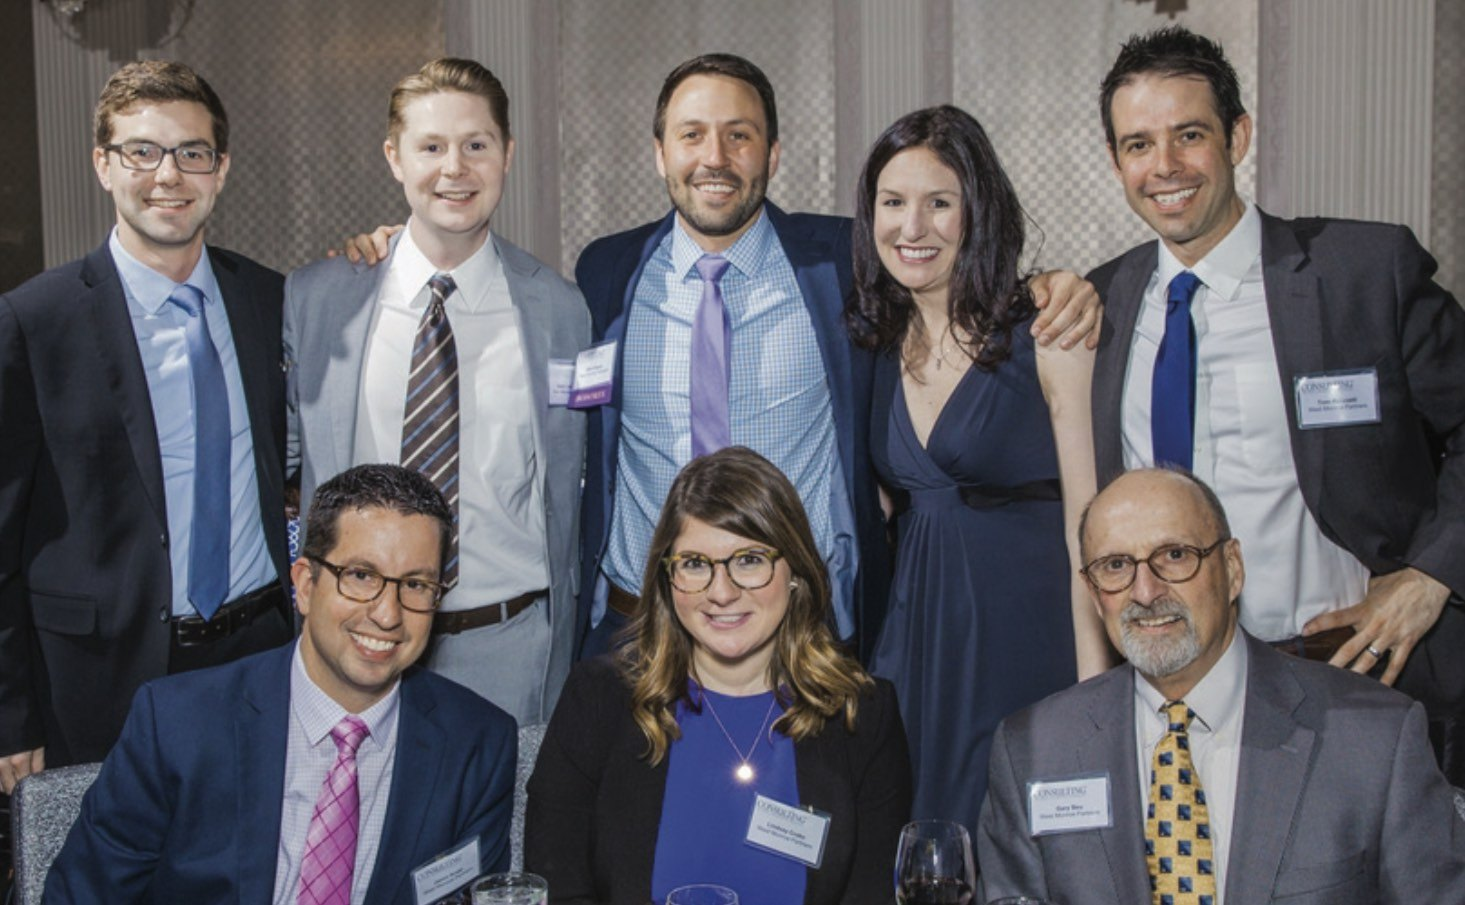 Gala Event Coverage: The 2016 Rising Stars of the Profession